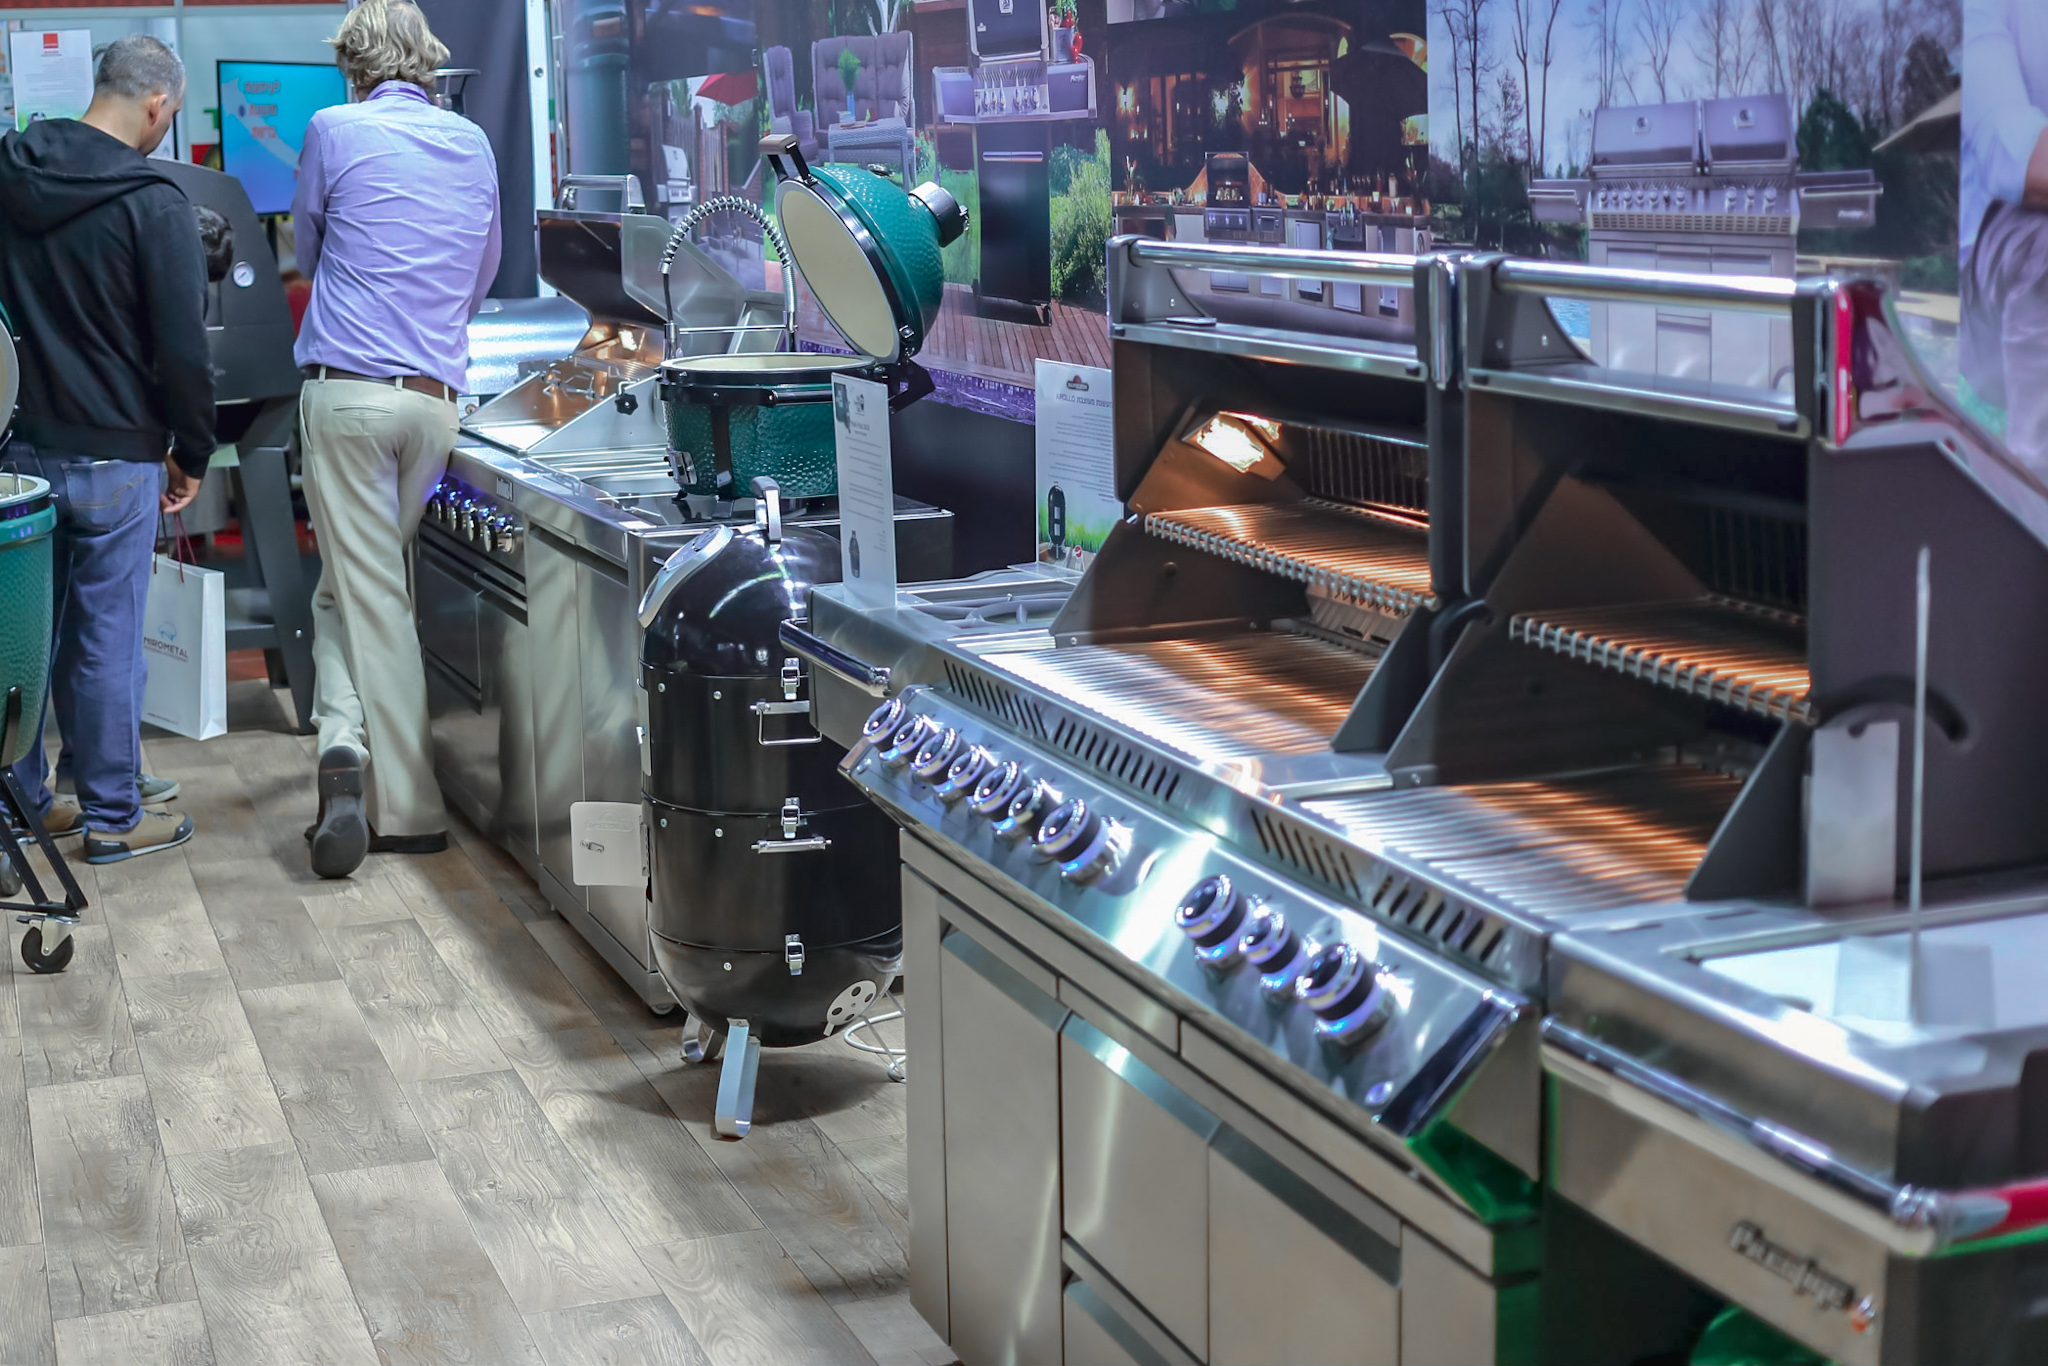 2021 North American Association of Food Equipment Manufacturers show (NAFEM 2021), Feb. 4 – 6, 2021, New Orleans Ernest N. Morial Convention Center